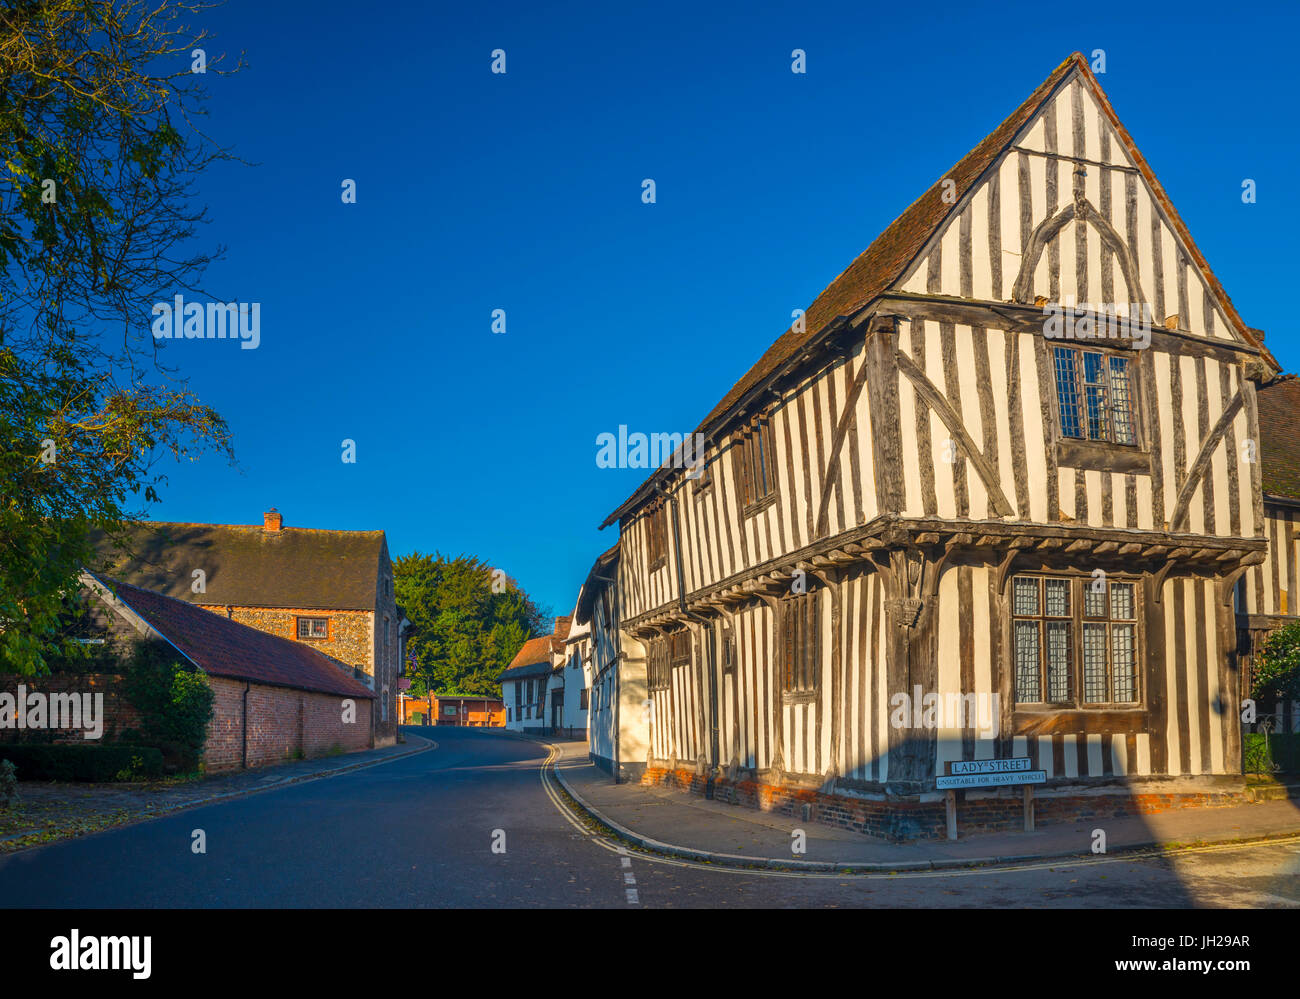 Corner of Water Street and Lady Street, Lavenham, Suffolk, England, United Kingdom, Europe Stock Photo